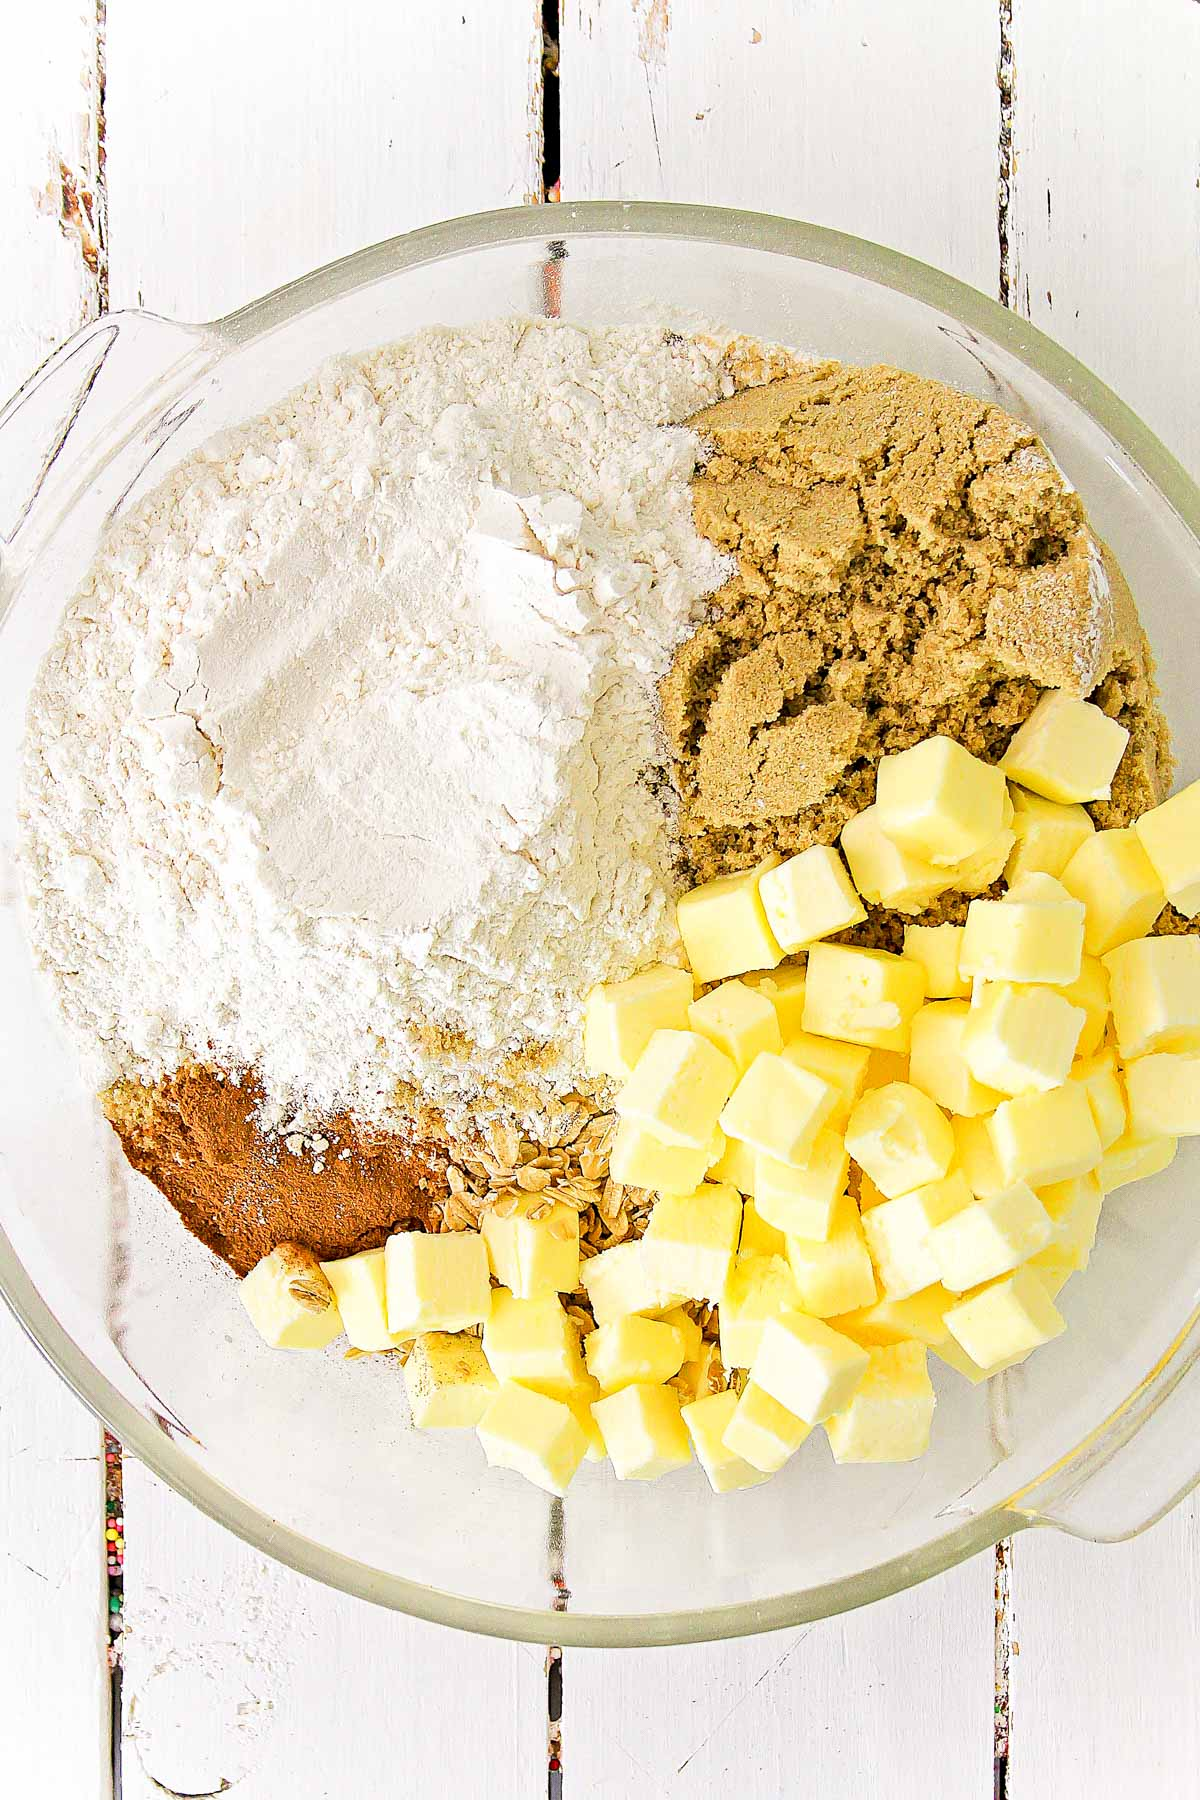 Dry ingredients and butter in a large bowl